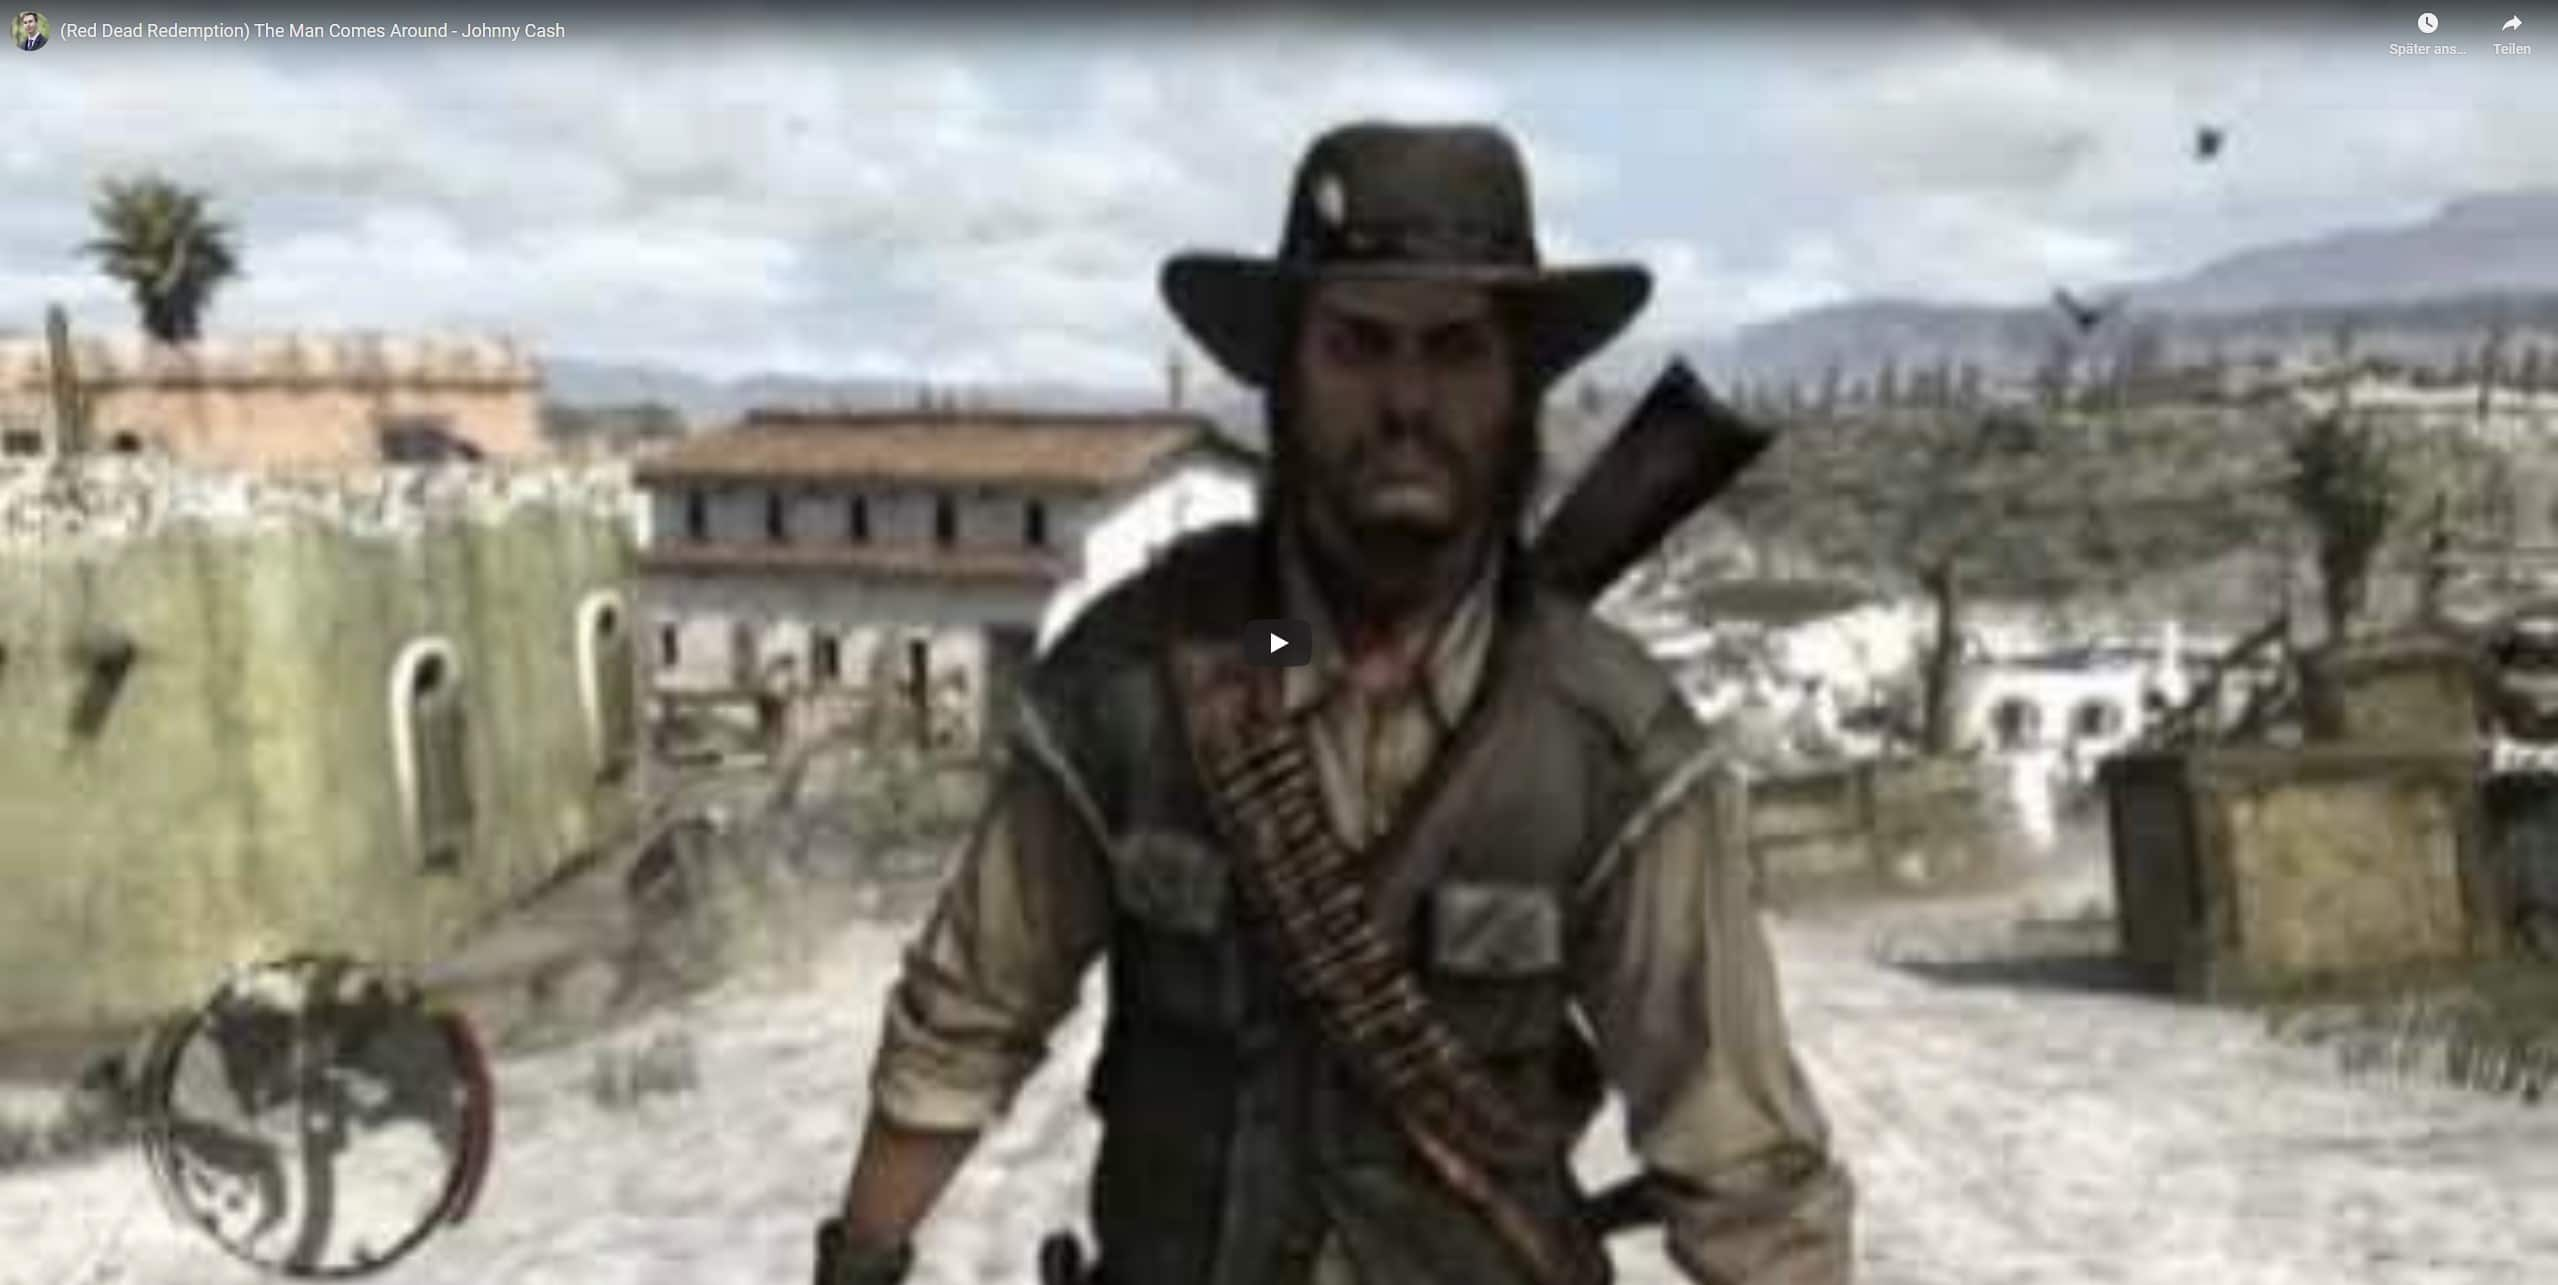 (Red Dead Redemption) The Man Comes Around – Johnny Cash